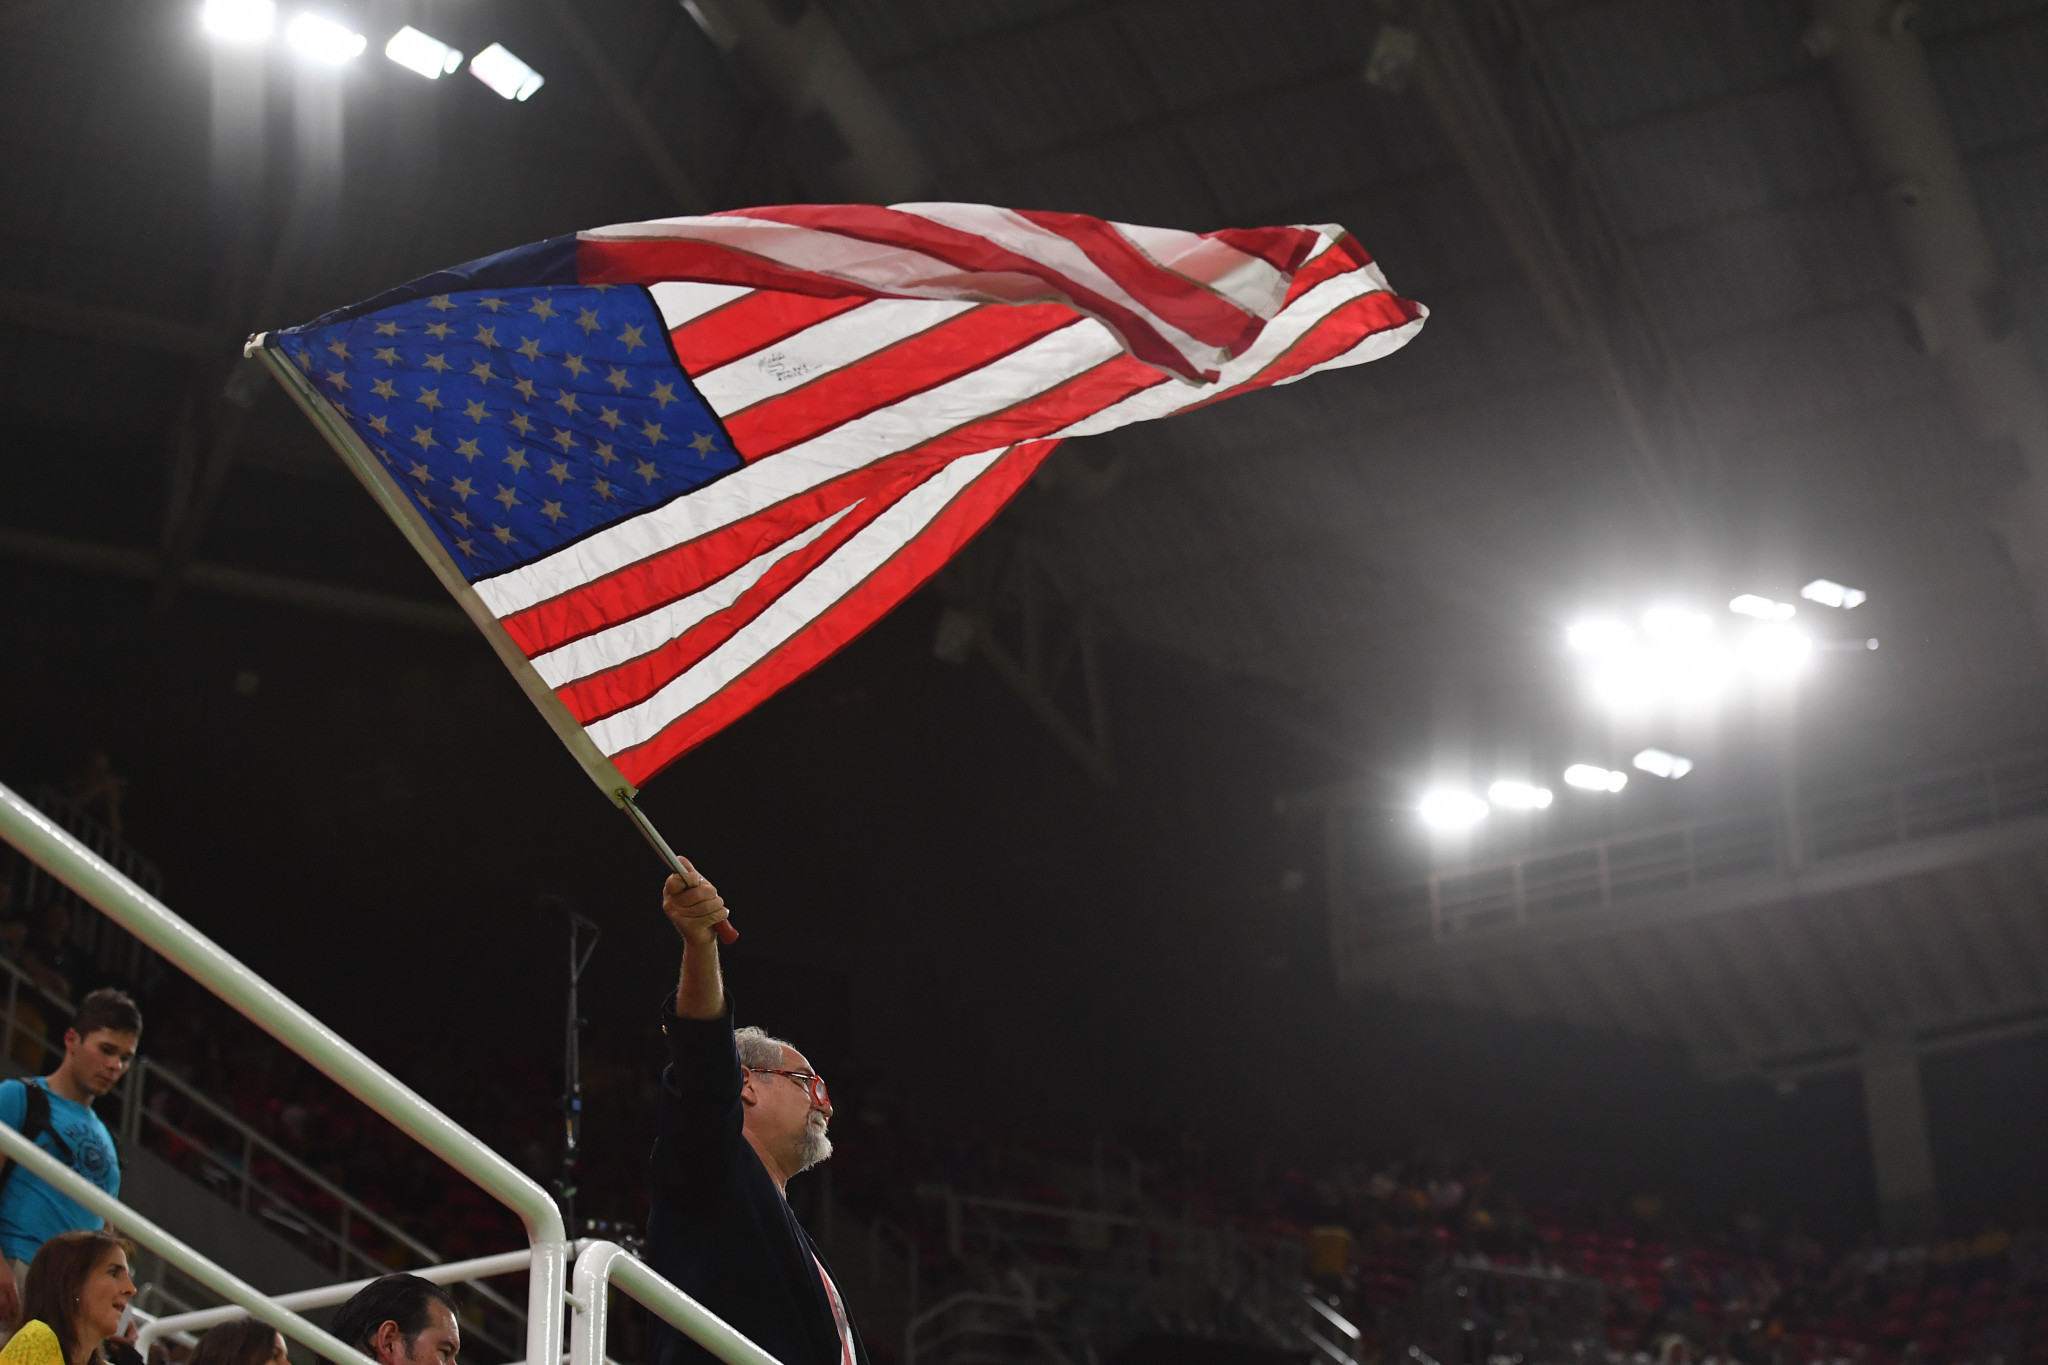 United States Olympic and Paralympic Committee joins calls for Tokyo 2020 postponement